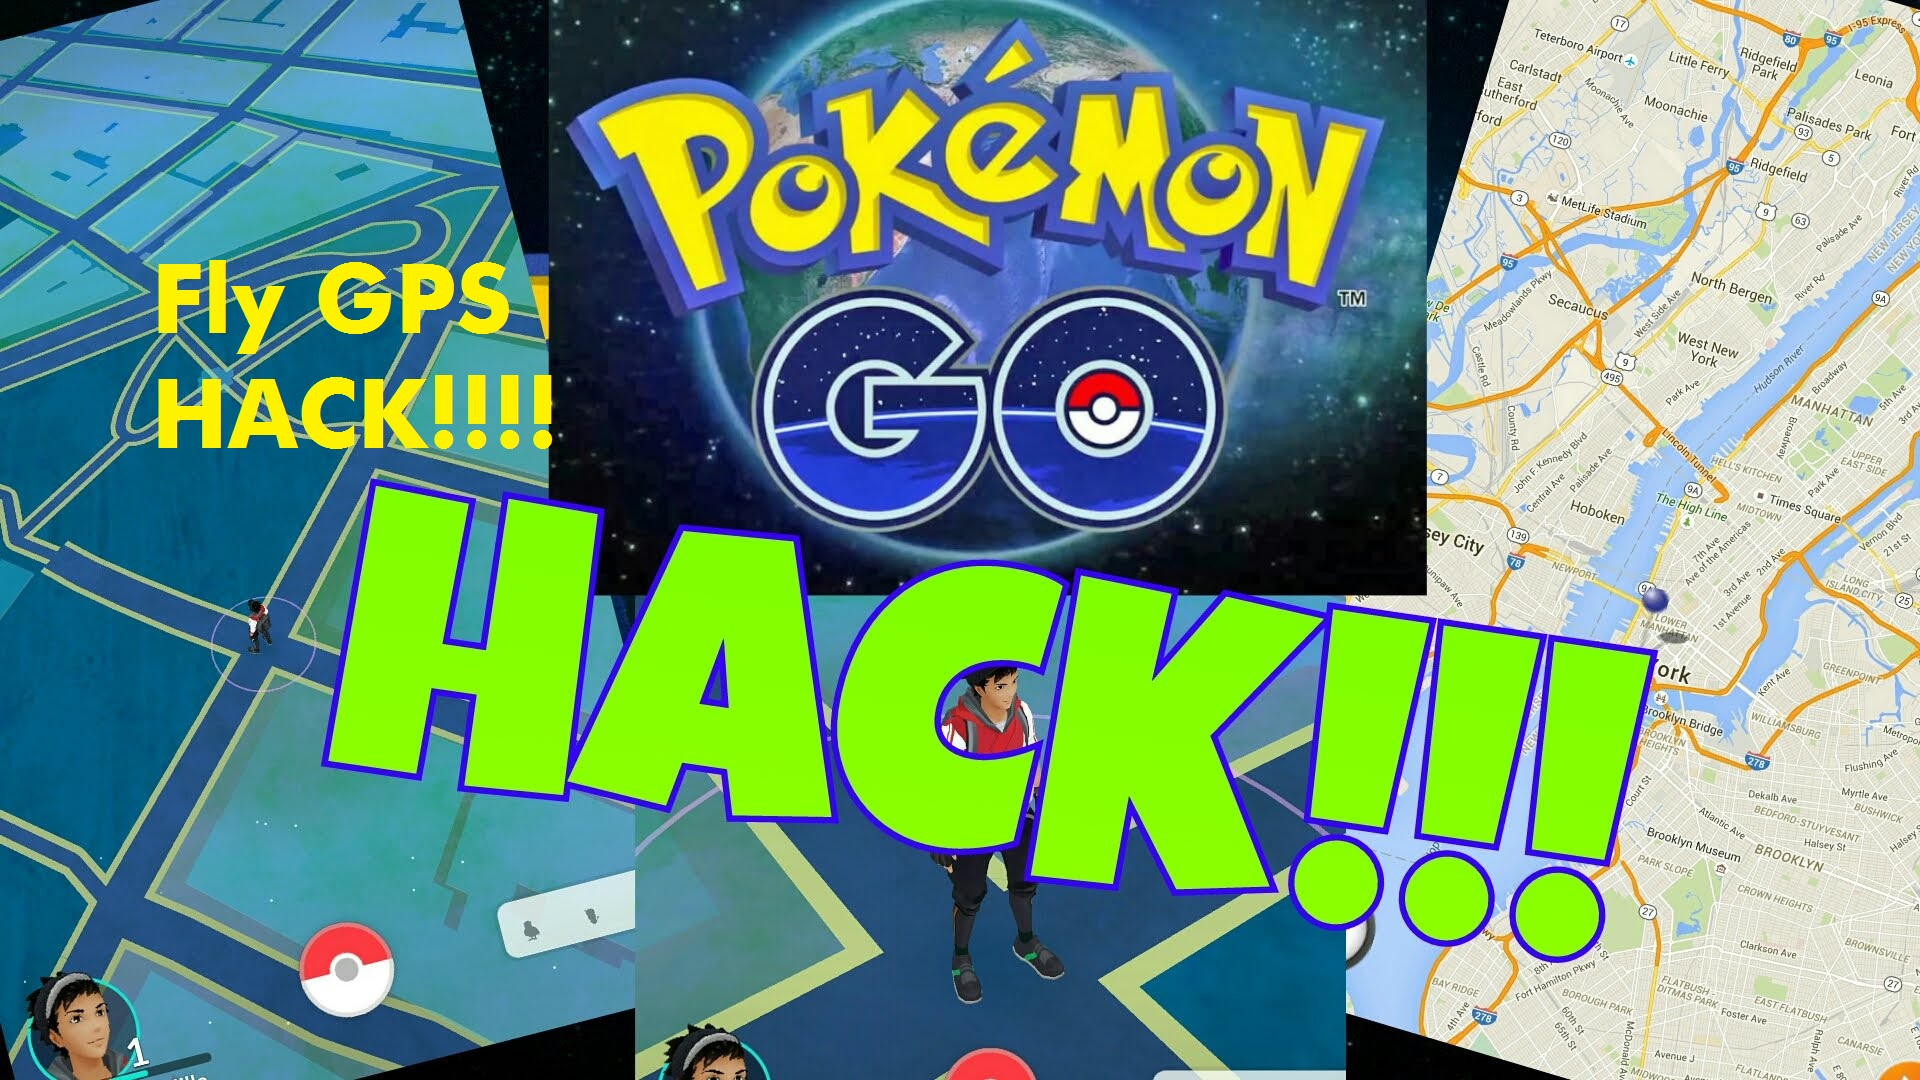 Fly GPS Apk (Fake GPS) Download For Pokemon GO Location Hack - Tech